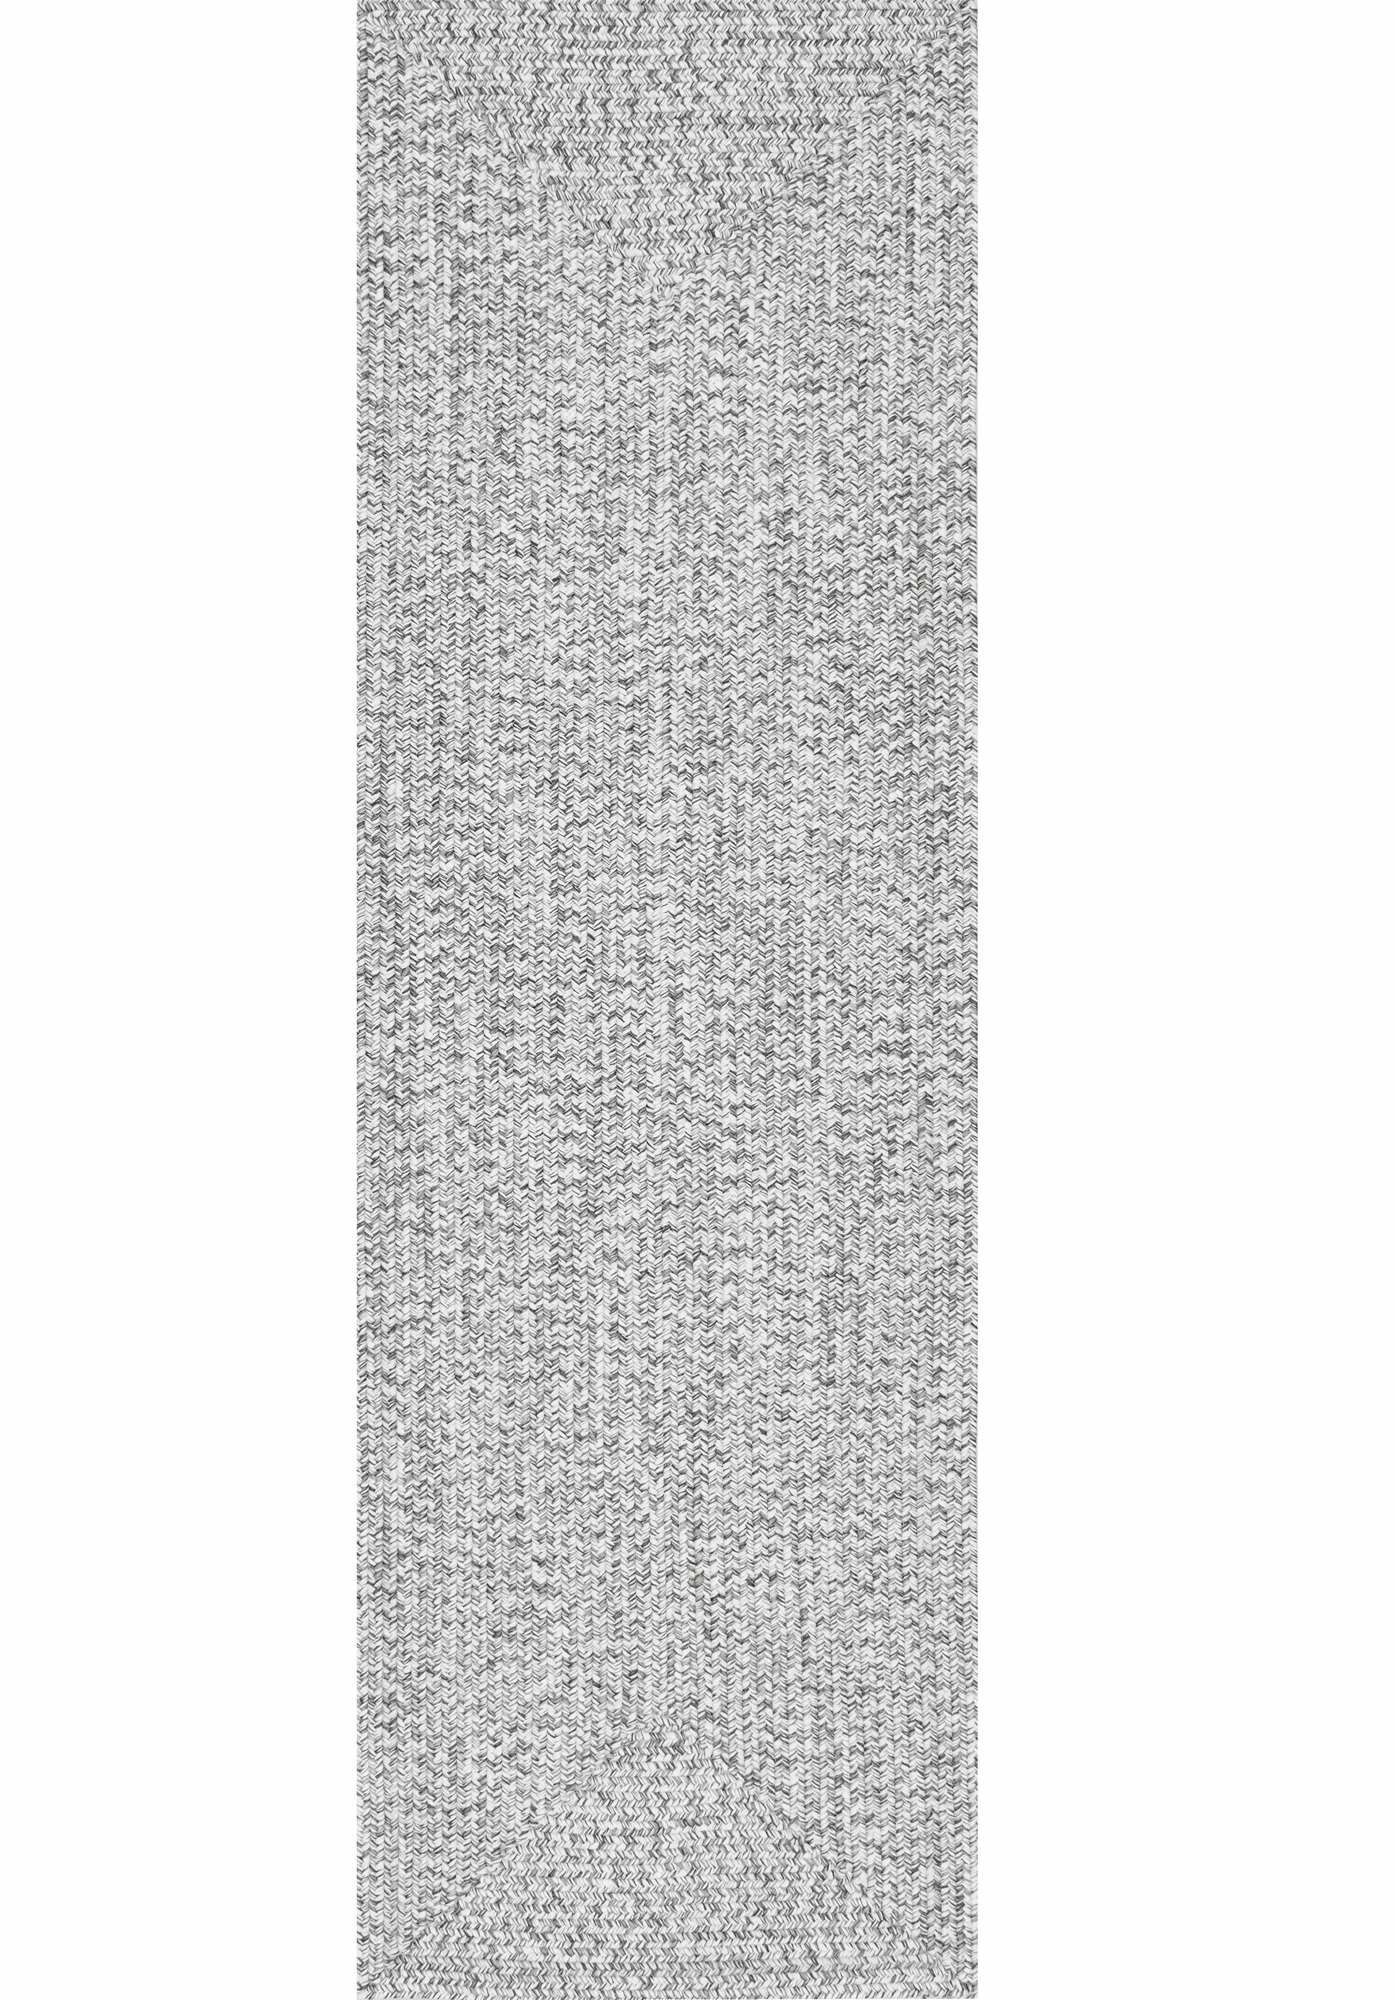 Kulpmont Gray Indoor/Outdoor Area Rug Rug Size: Square 8'